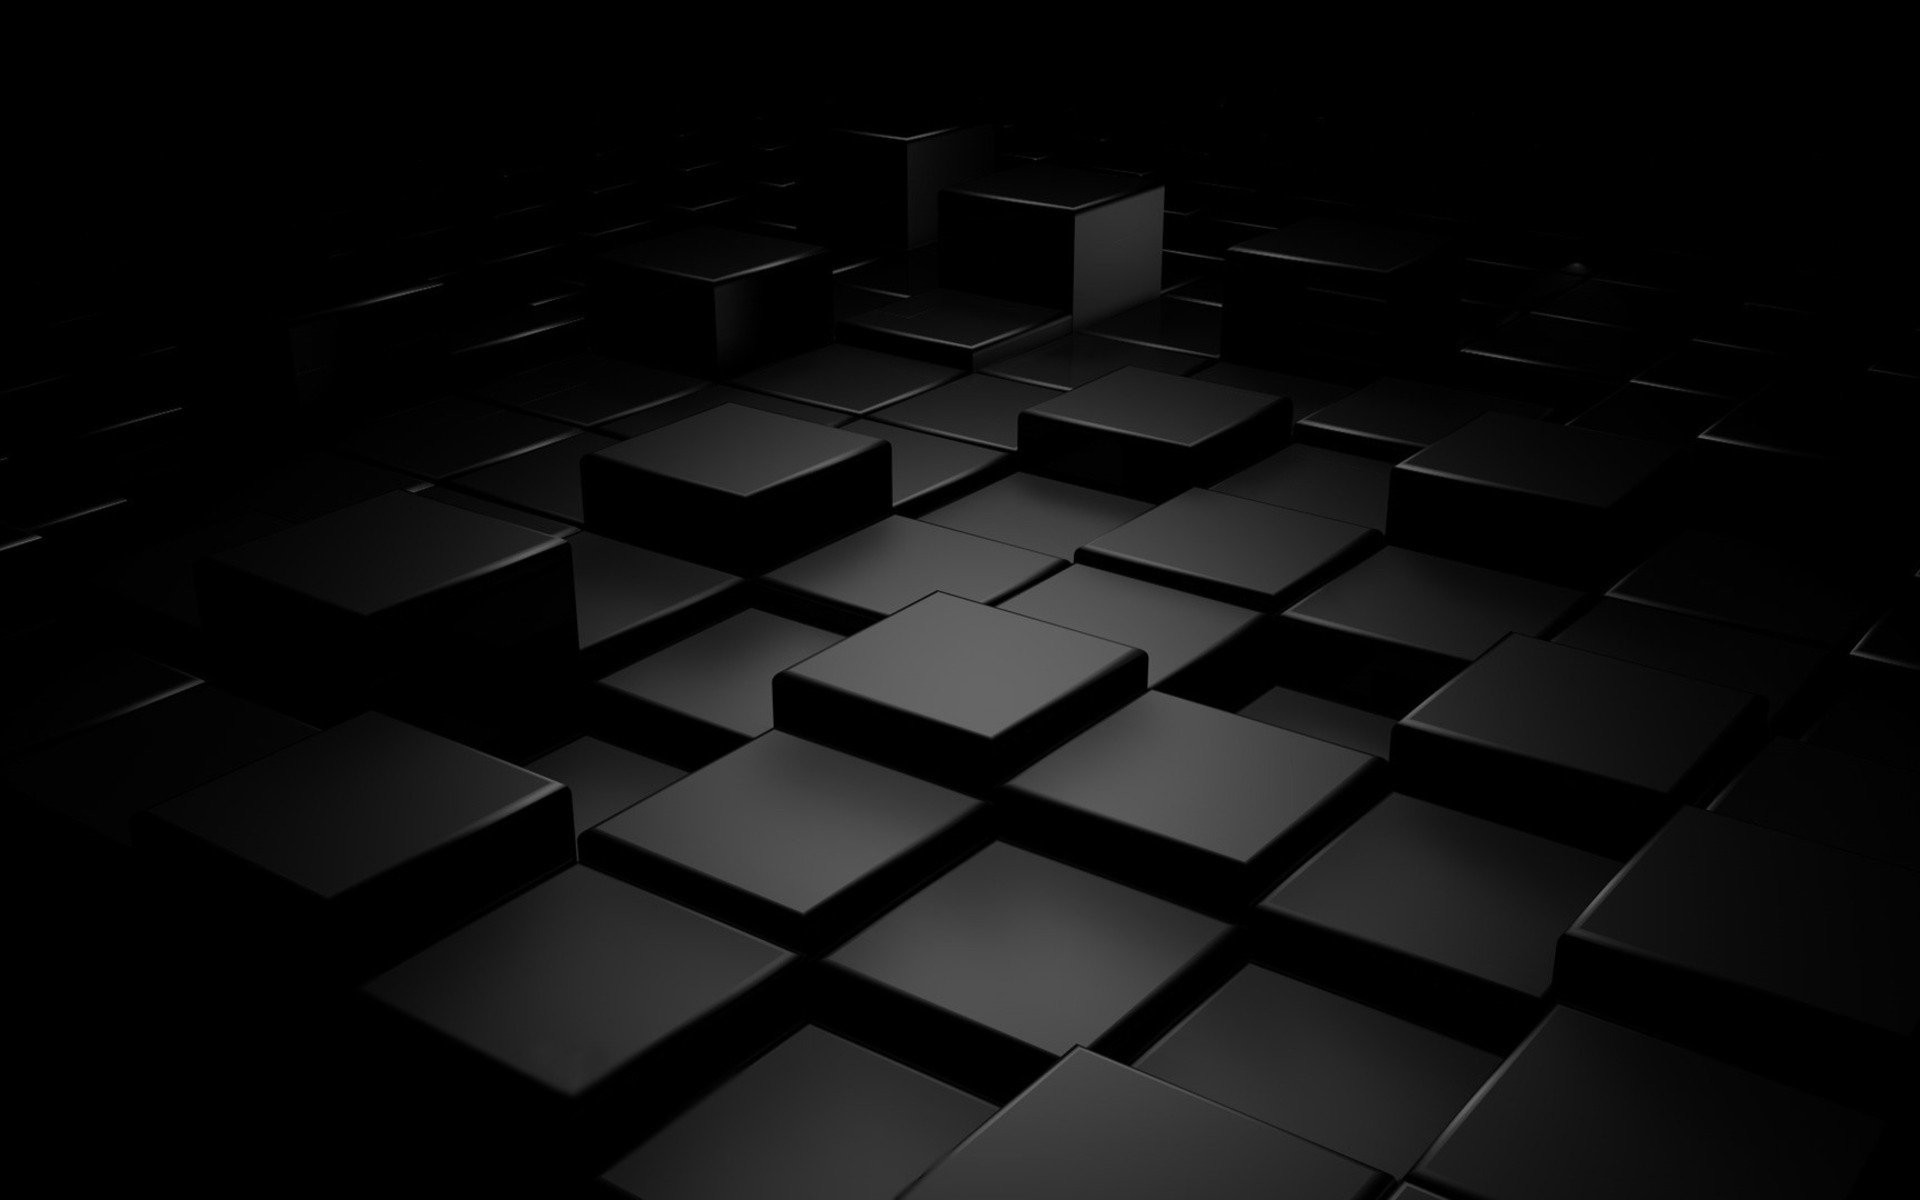 1920x1200 Plain Black 3D 3 Desktop Wallpaper - Hdblackwallpaper.com